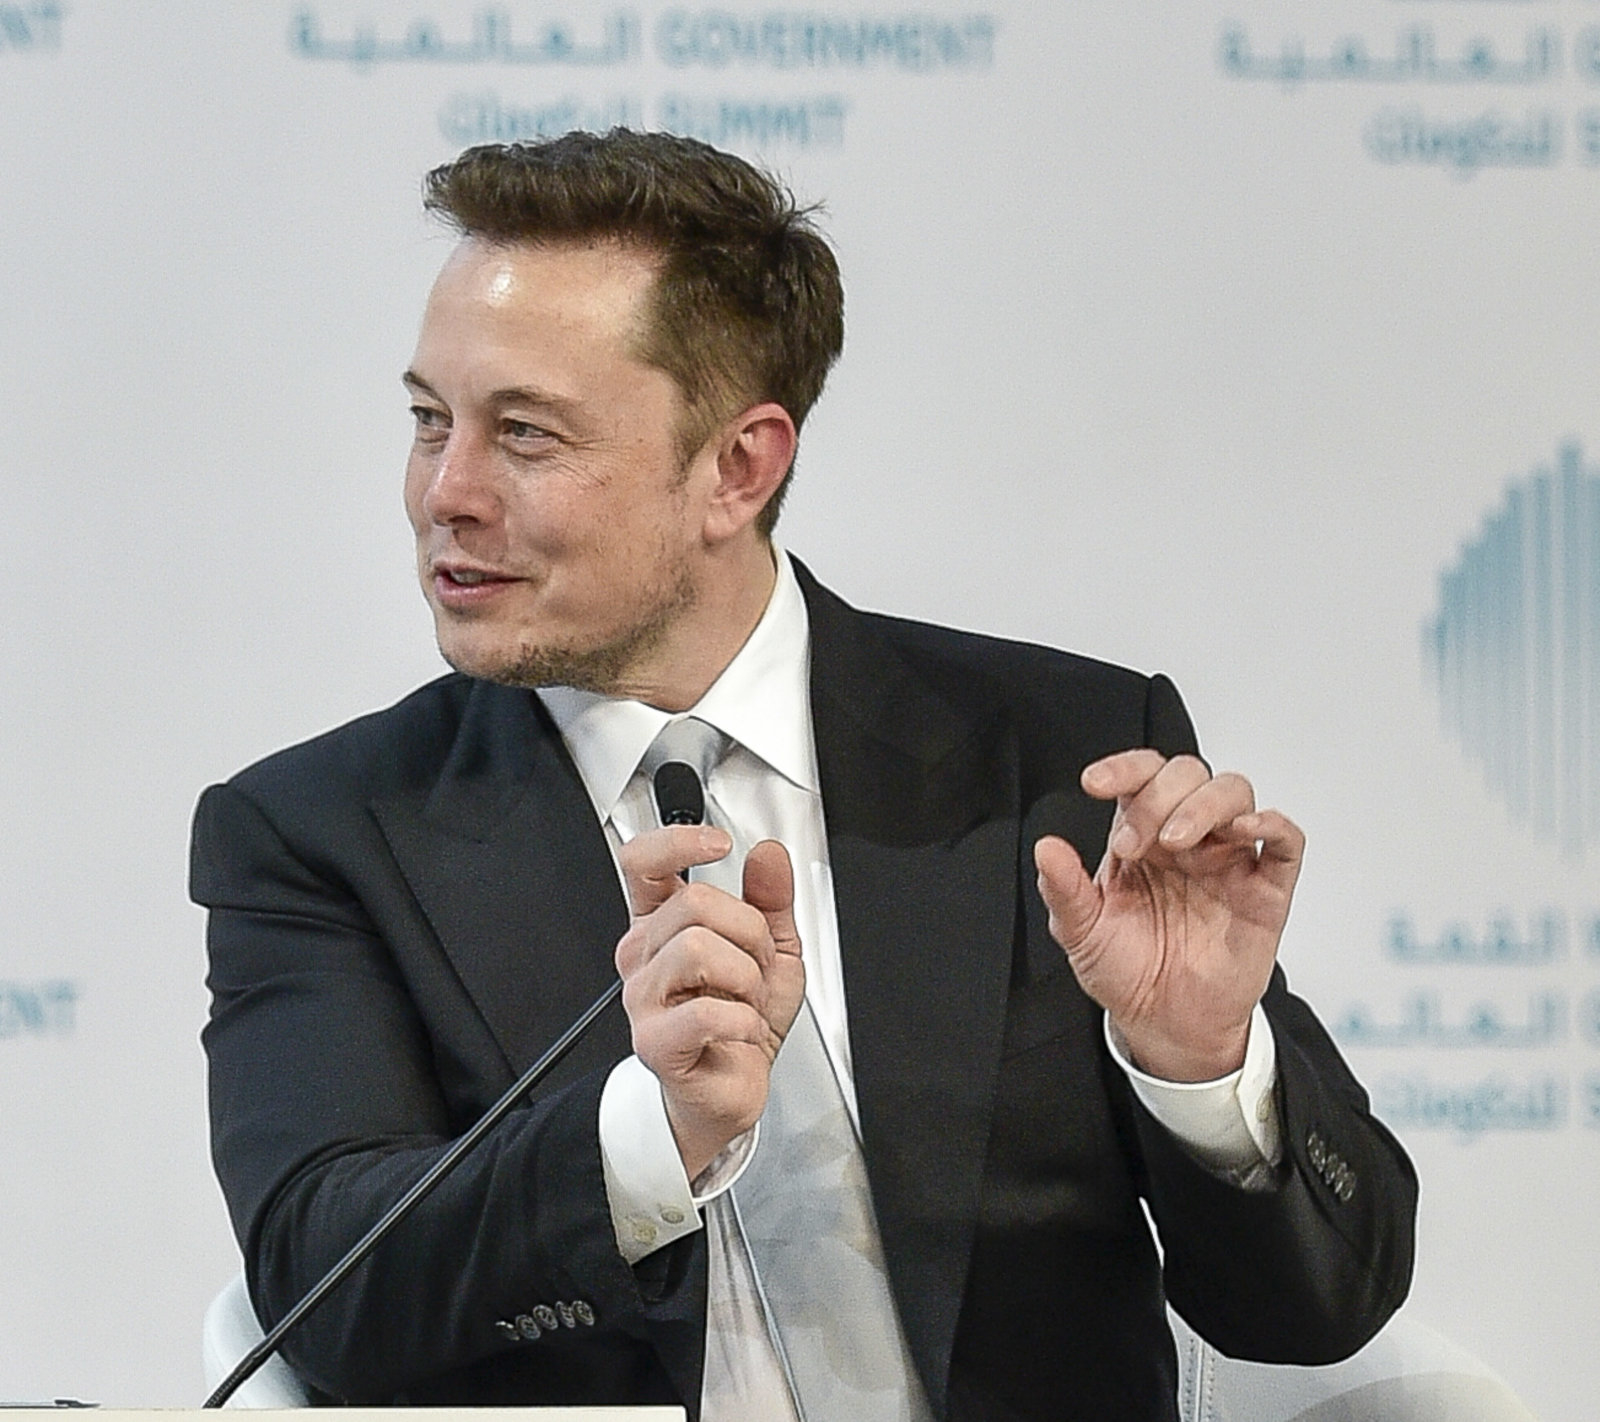 Tesla CEO Elon Musk attends a panel discussion at the World Government Summit 2017 in Dubai's Madinat Jumeirah on February 13, 2017. / AFP / STRINGER        (Photo credit should read STRINGER/AFP/Getty Images)